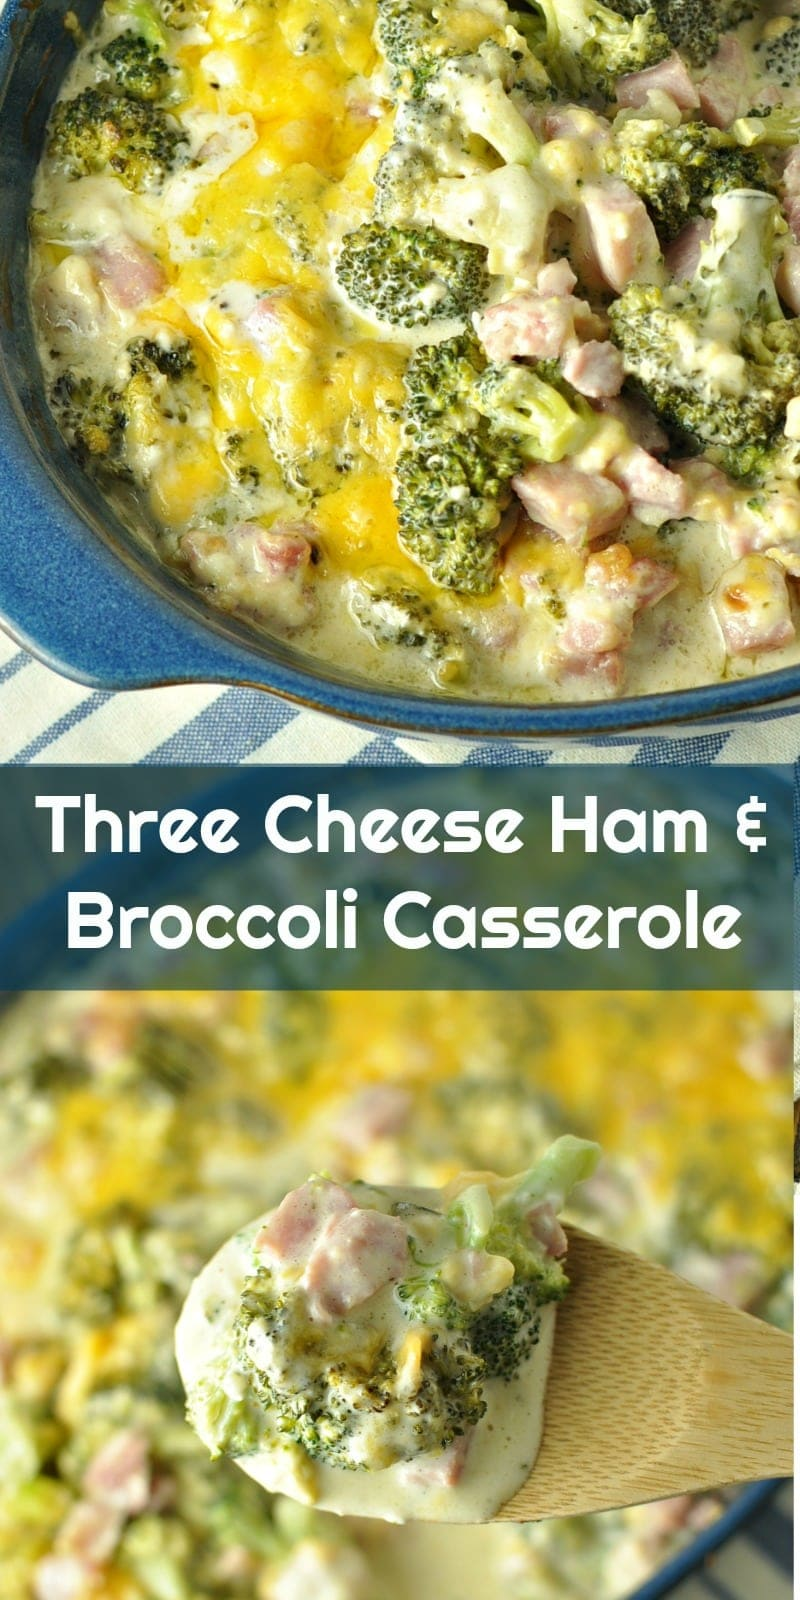 Low Carb Three Cheese Ham and Broccoli Casserole